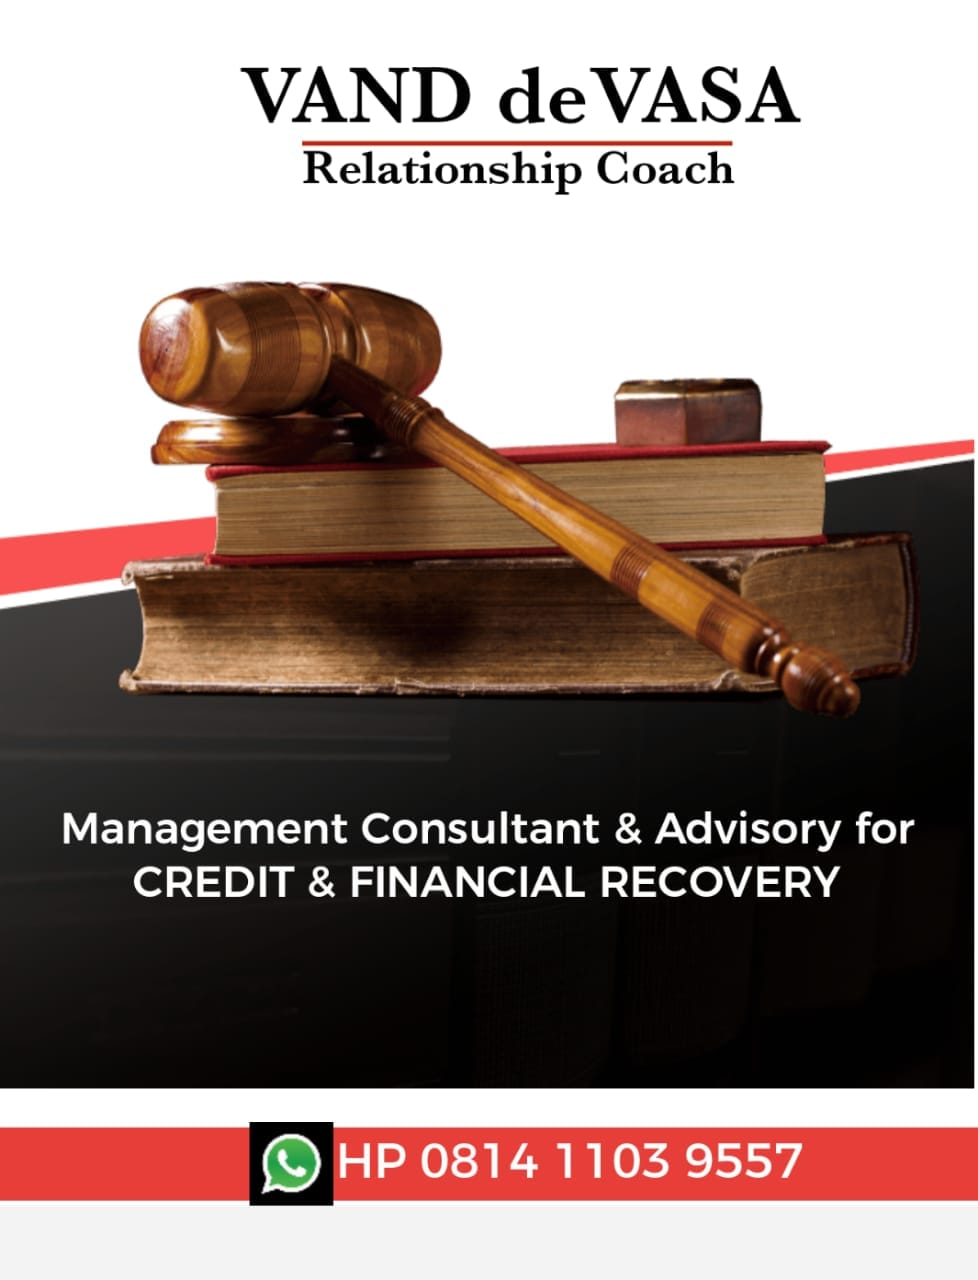 Credit dan Financial Recovery